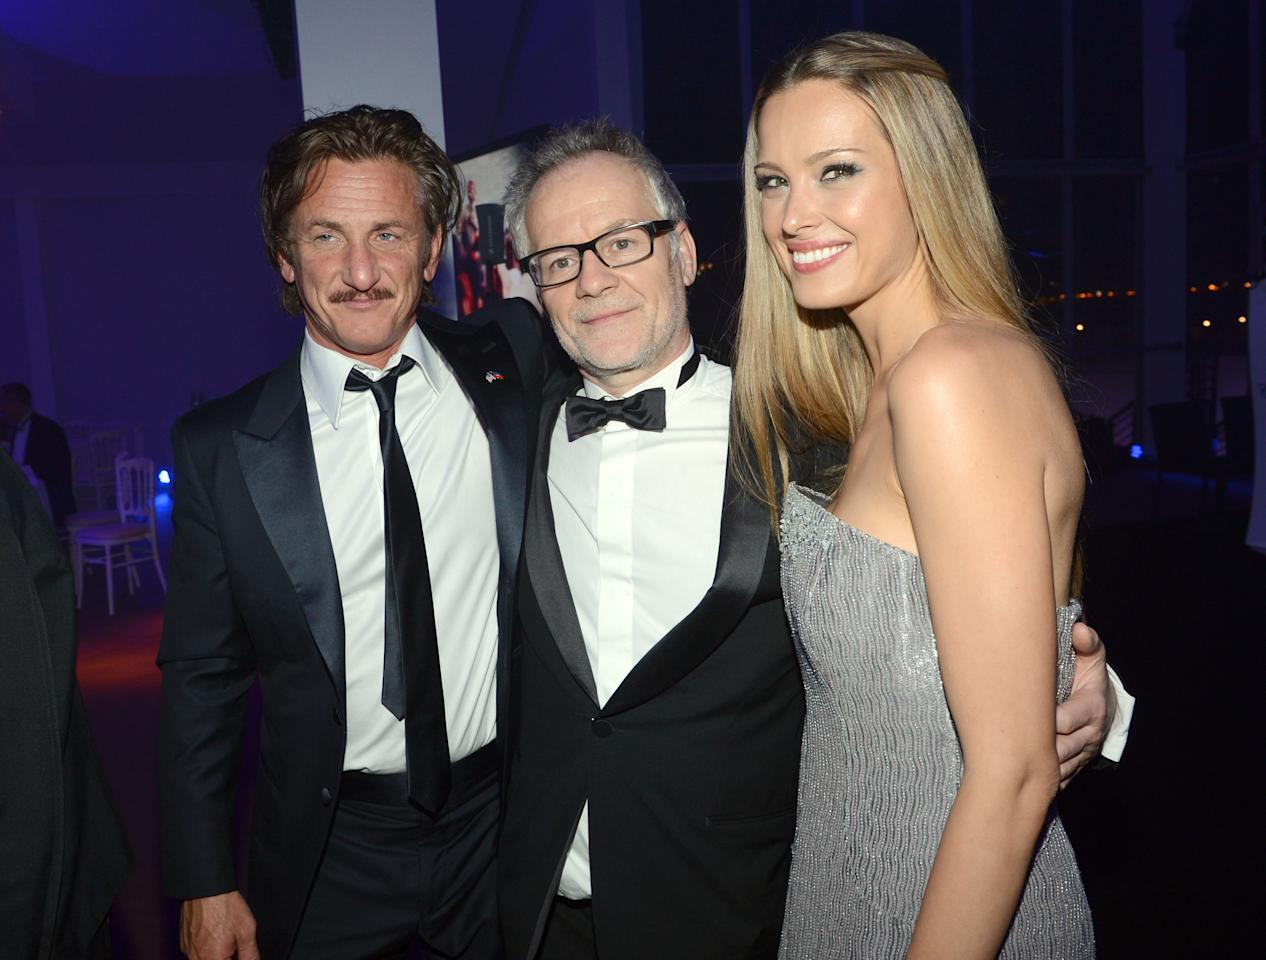 CANNES, FRANCE - MAY 18:  Actor Sean Penn, Thierry Frémaux, director Cannes Film Festival and model Petra Nemcova attend the Haiti Carnival in Cannes Benefitting J/P HRO, Artists for Peace and Justice & Happy Hearts Fund Presented By Armani during the 65th Annual Cannes Film Festival on May 18, 2012 in Cannes, France.  (Photo by Michael Buckner/Getty Images)